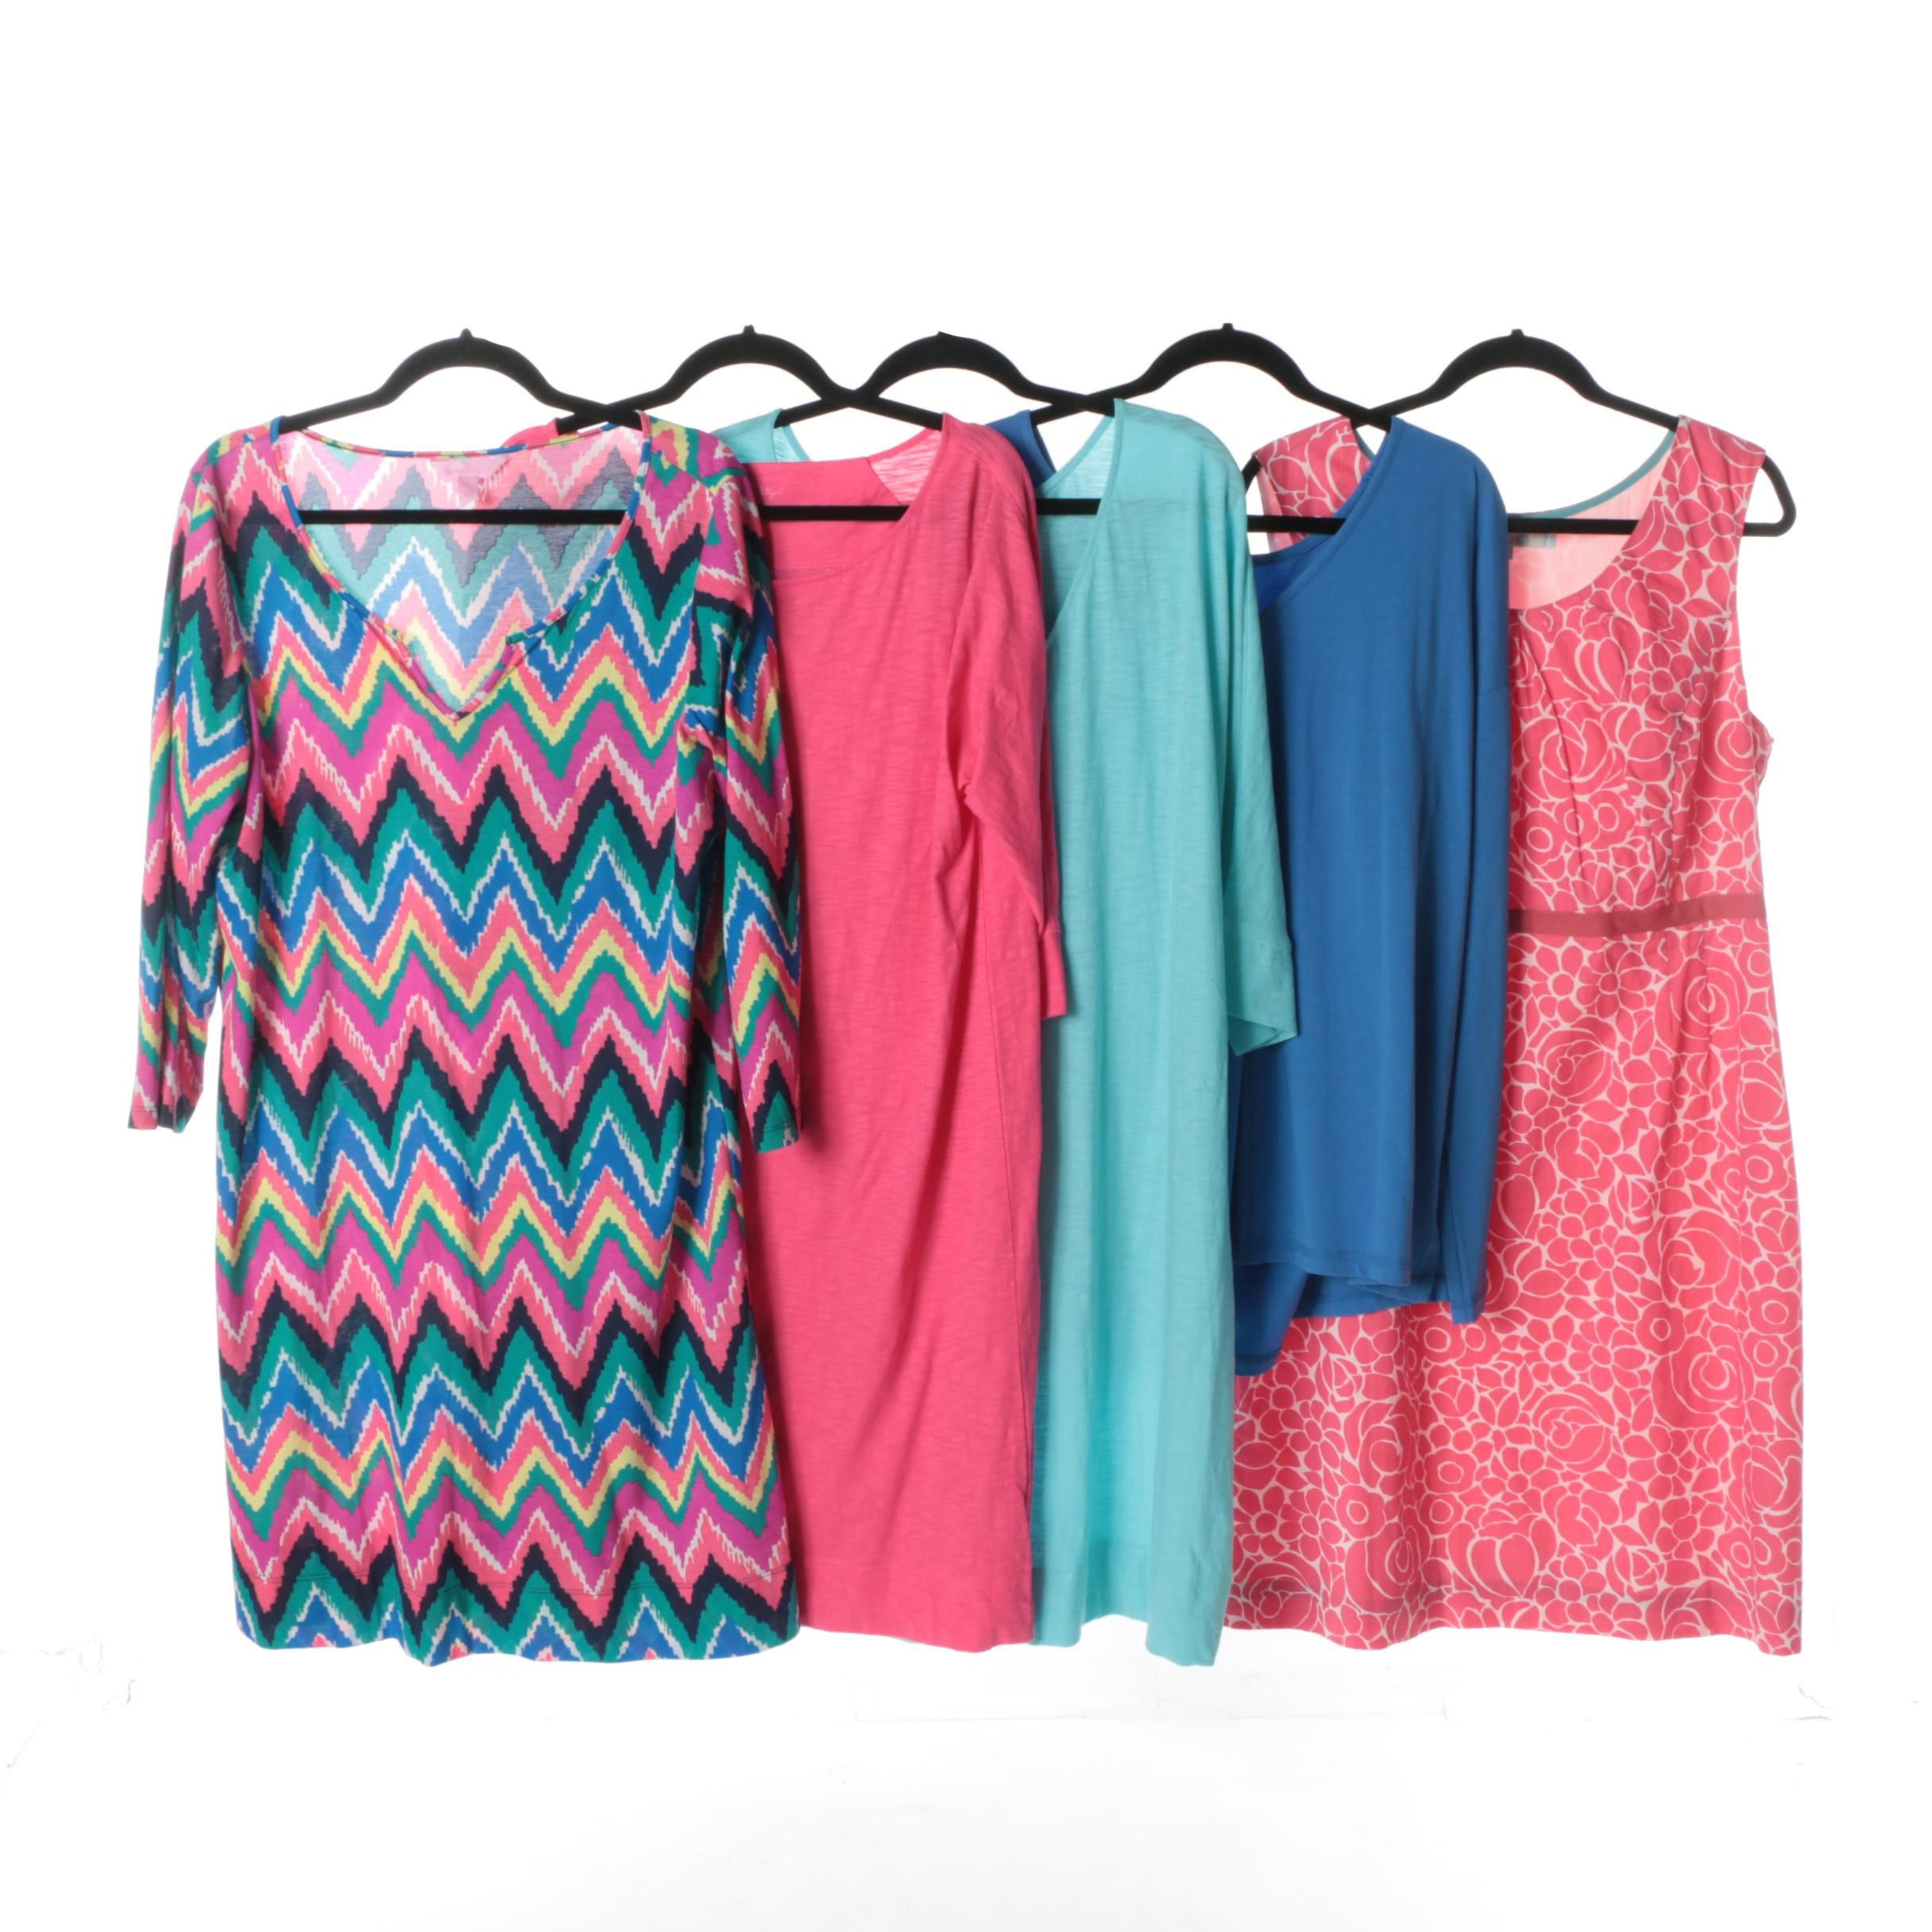 Women's Dresses and Top Including Lilly Pulitzer and Boden